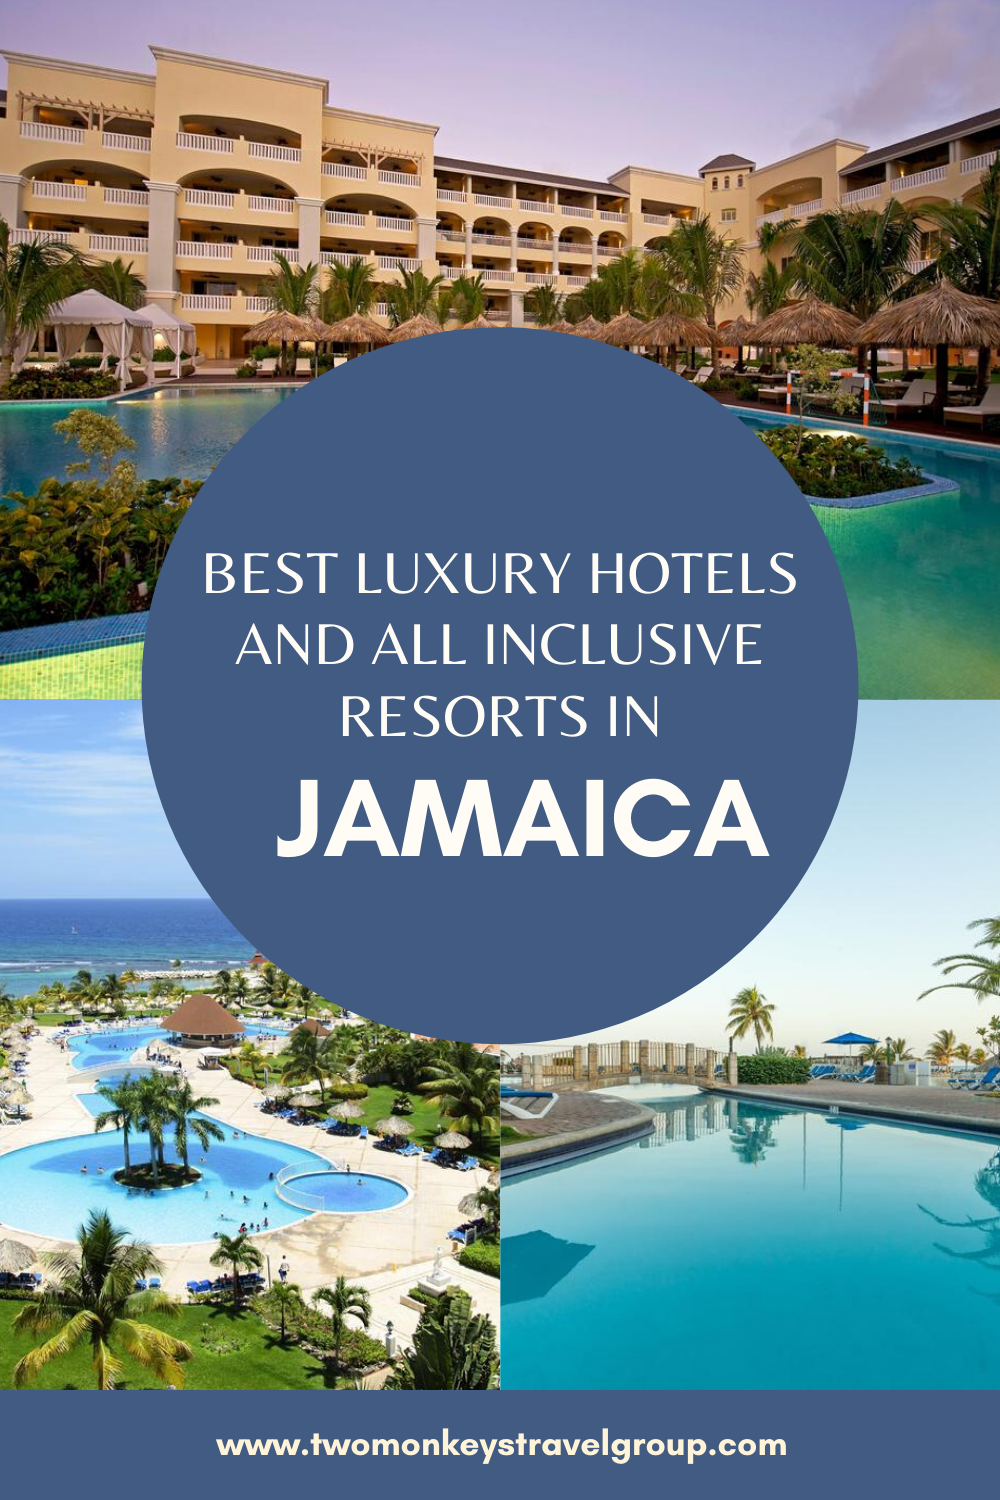 List of Best Luxury Hotels and All Inclusive Resorts in Jamaica